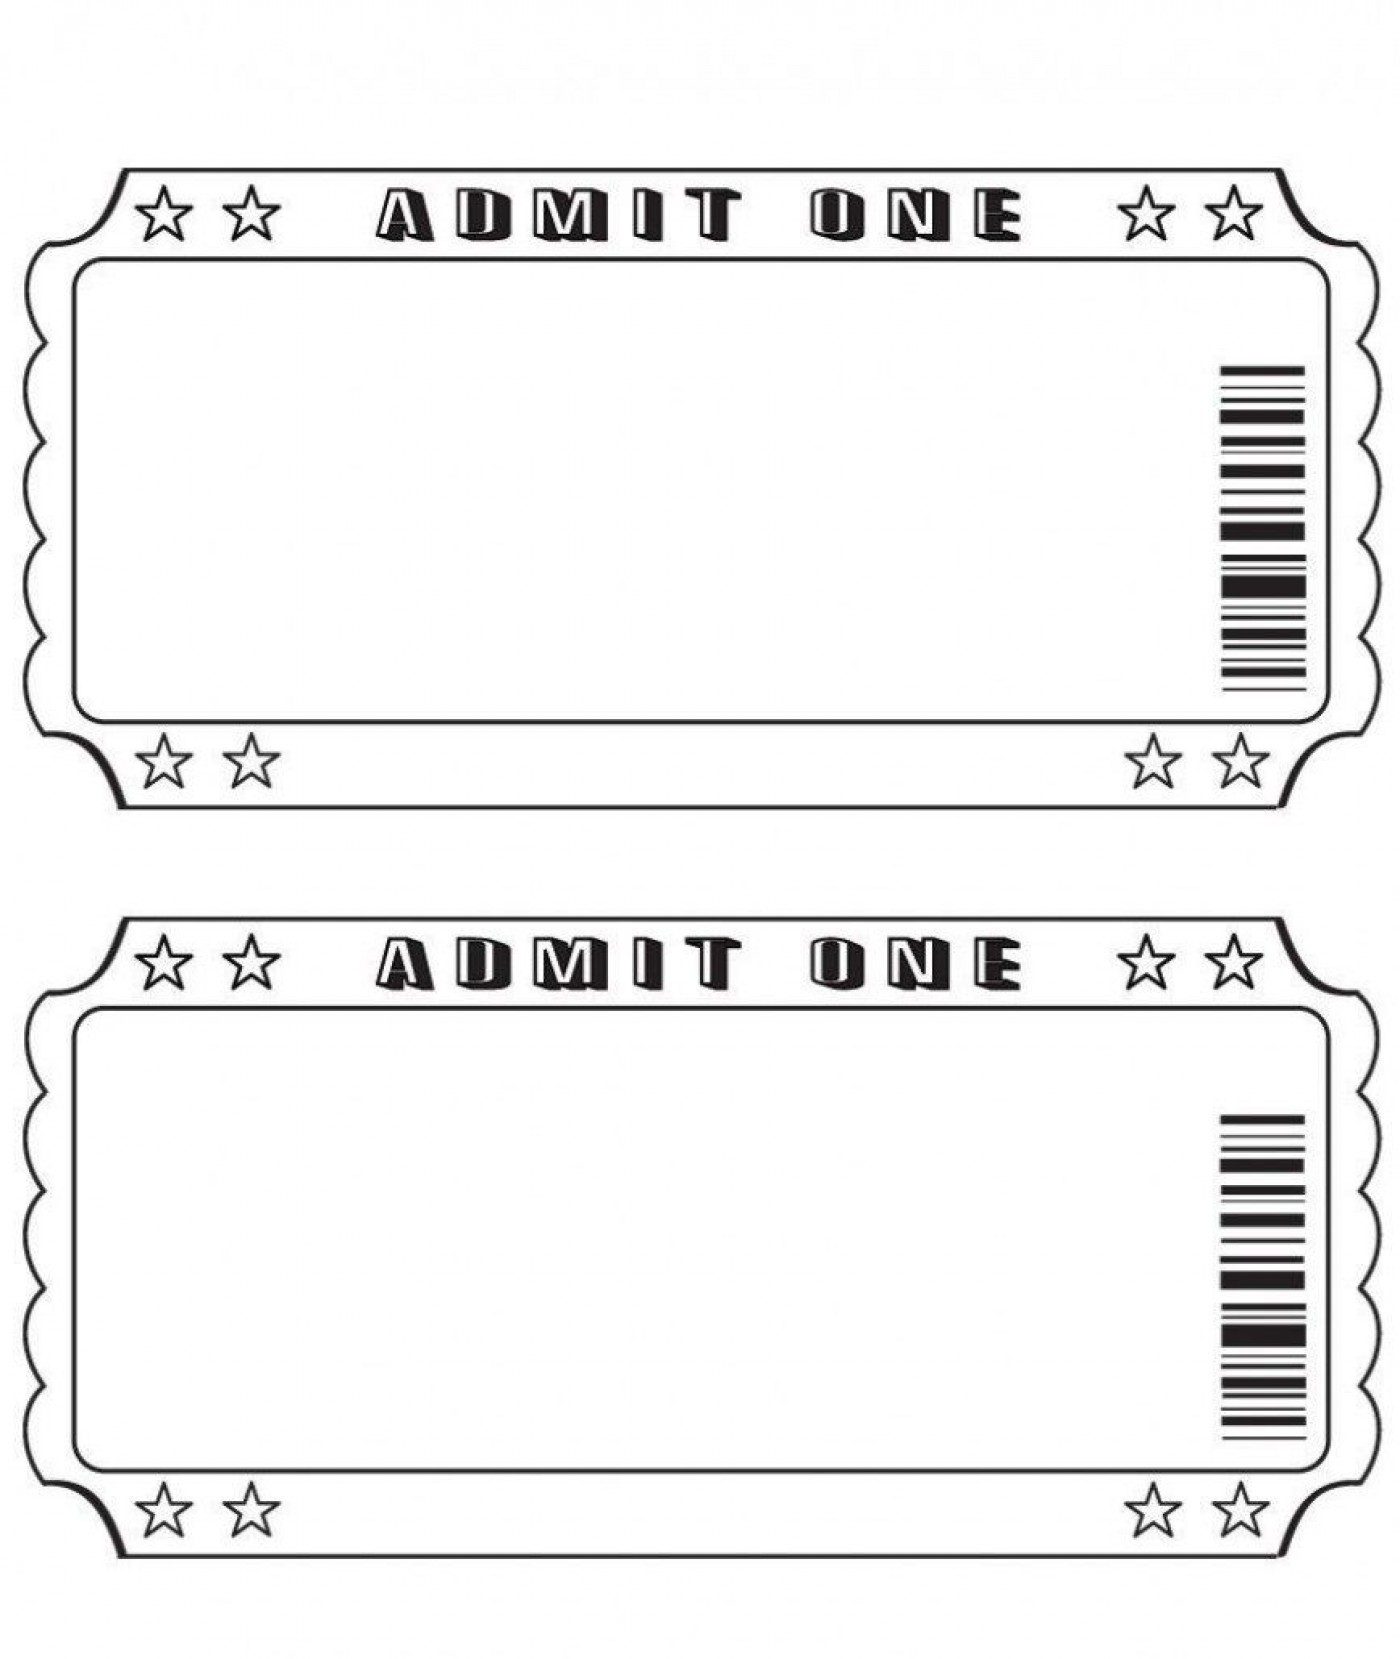 001 Unbelievable Editable Ticket Template Free Highest Clarity  Concert Word Irctc Format Download Movie1400